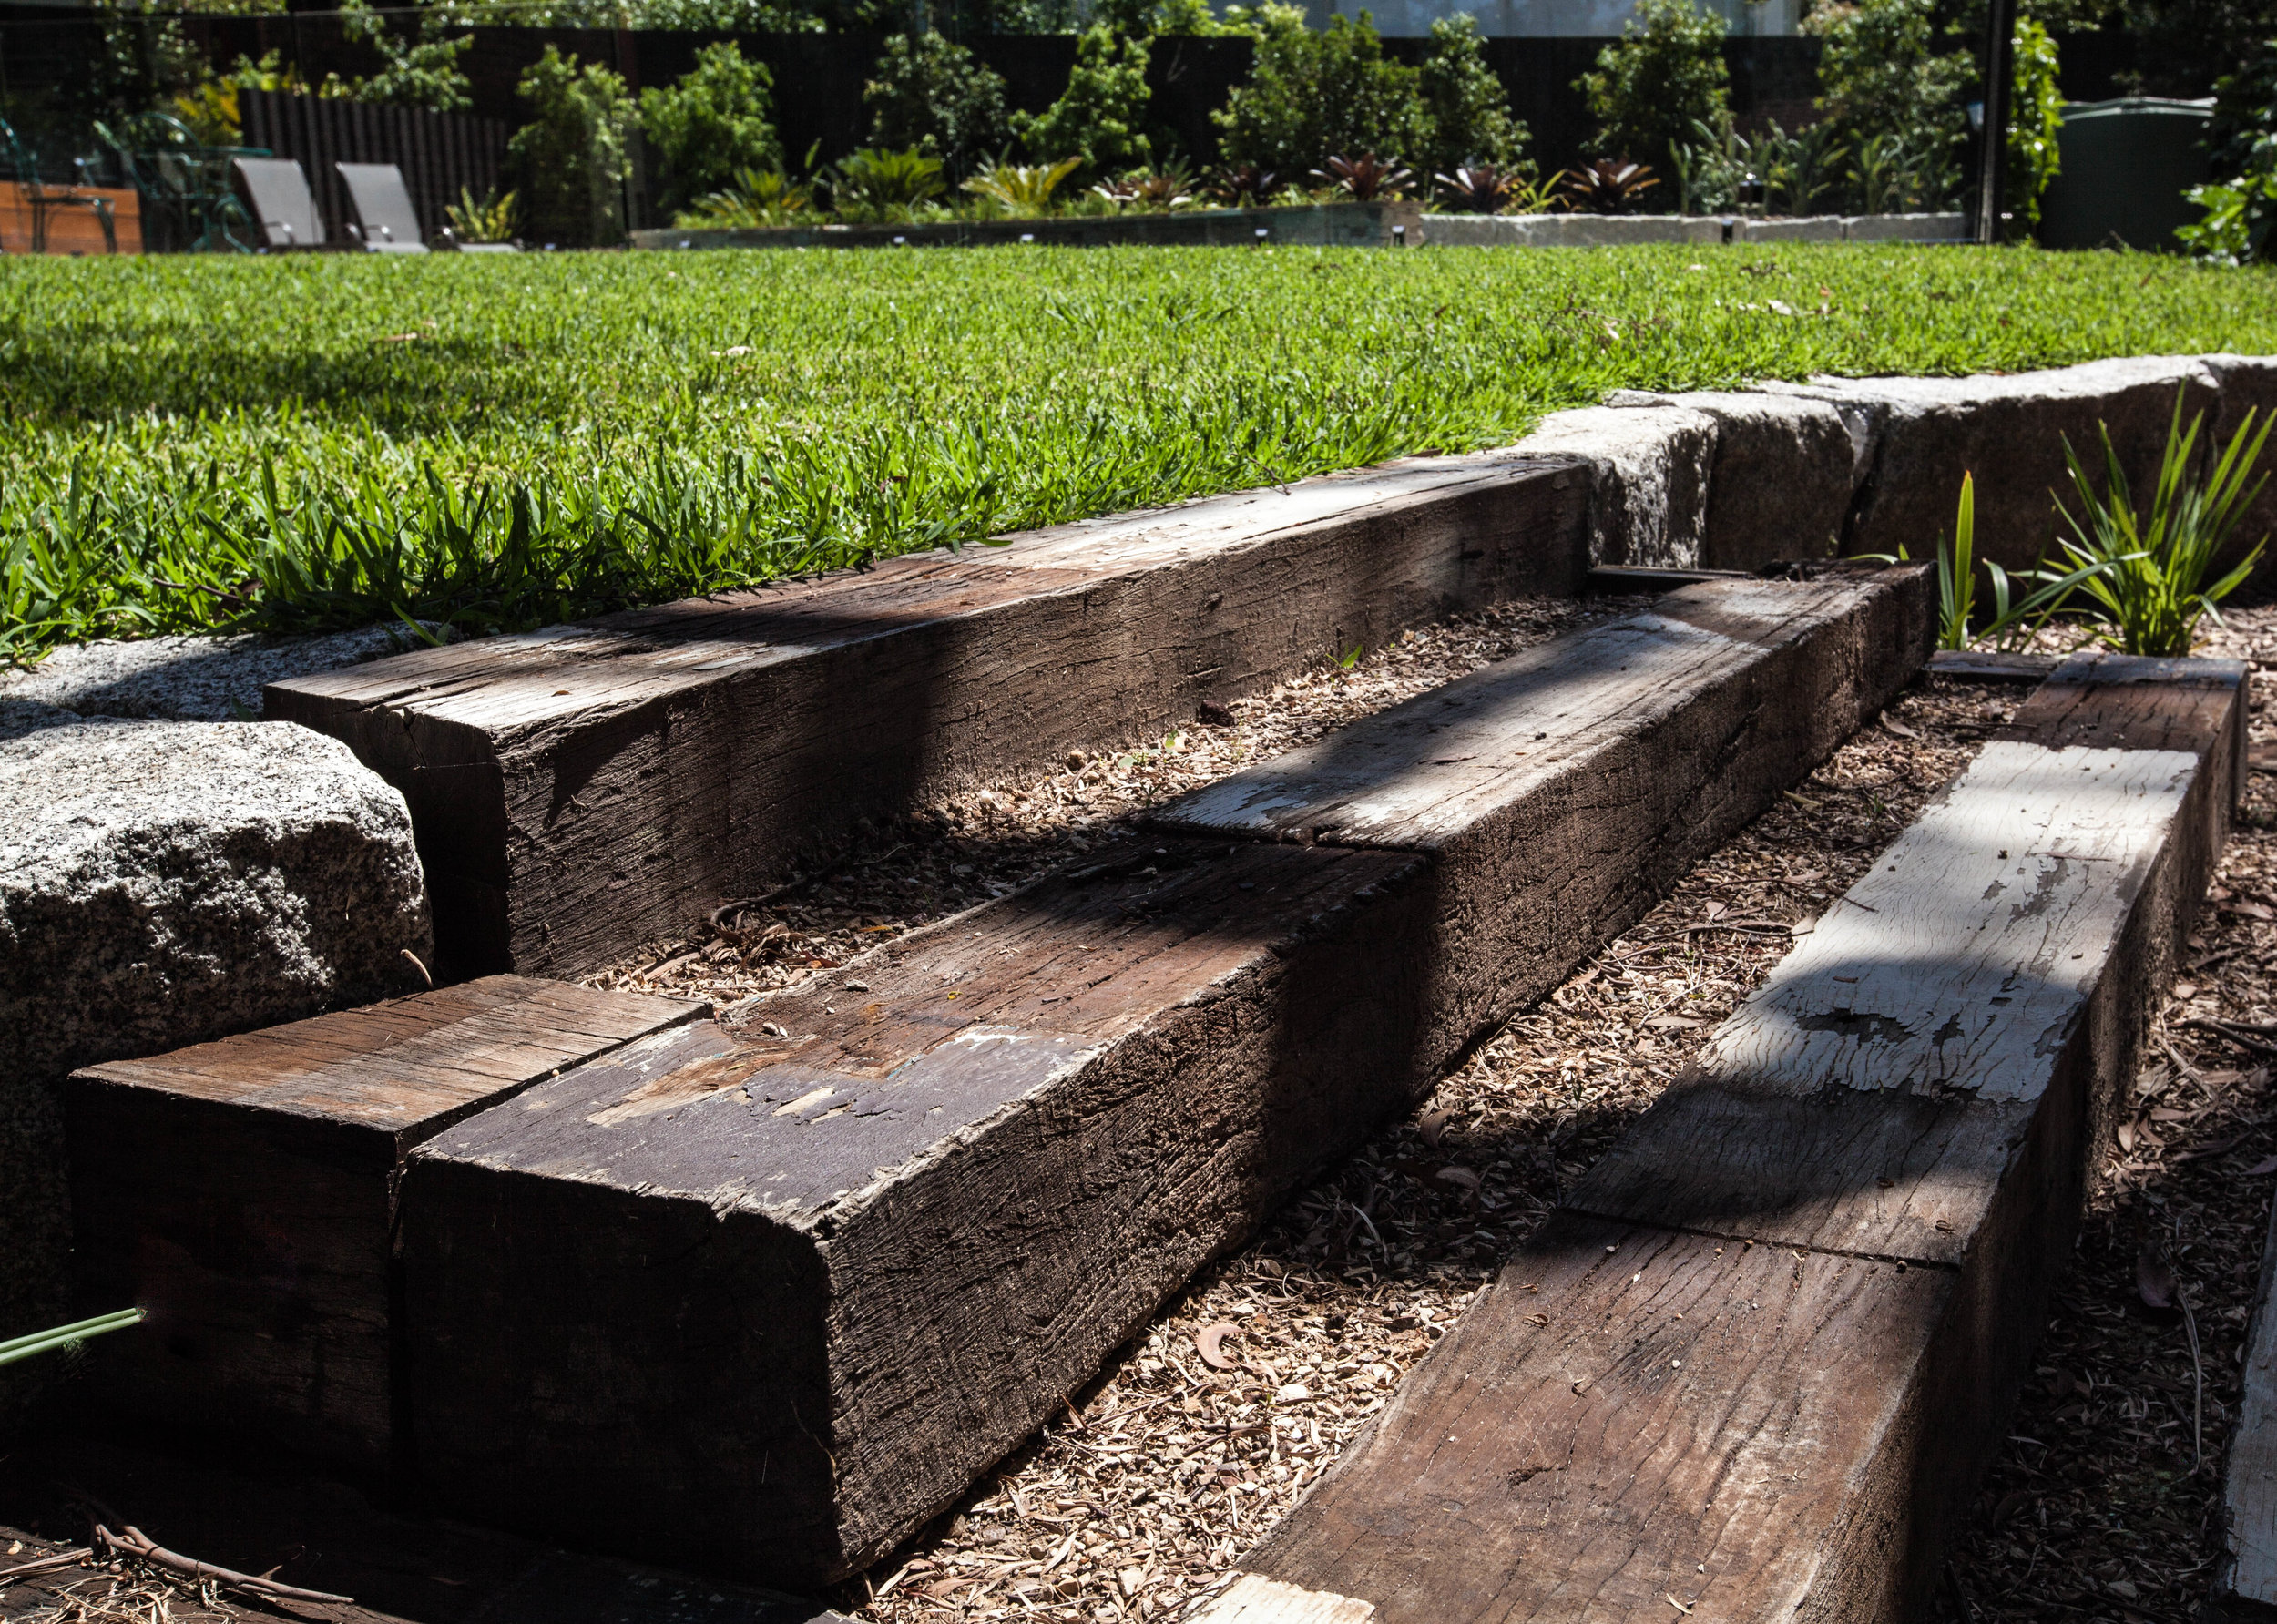 Recycled timber steps lead up from the sunken campfire lounge to the lawn area. Bolstered granite blocks serve as retaining walls to give the lawn a lift and to tie in with the granite in the pool area.